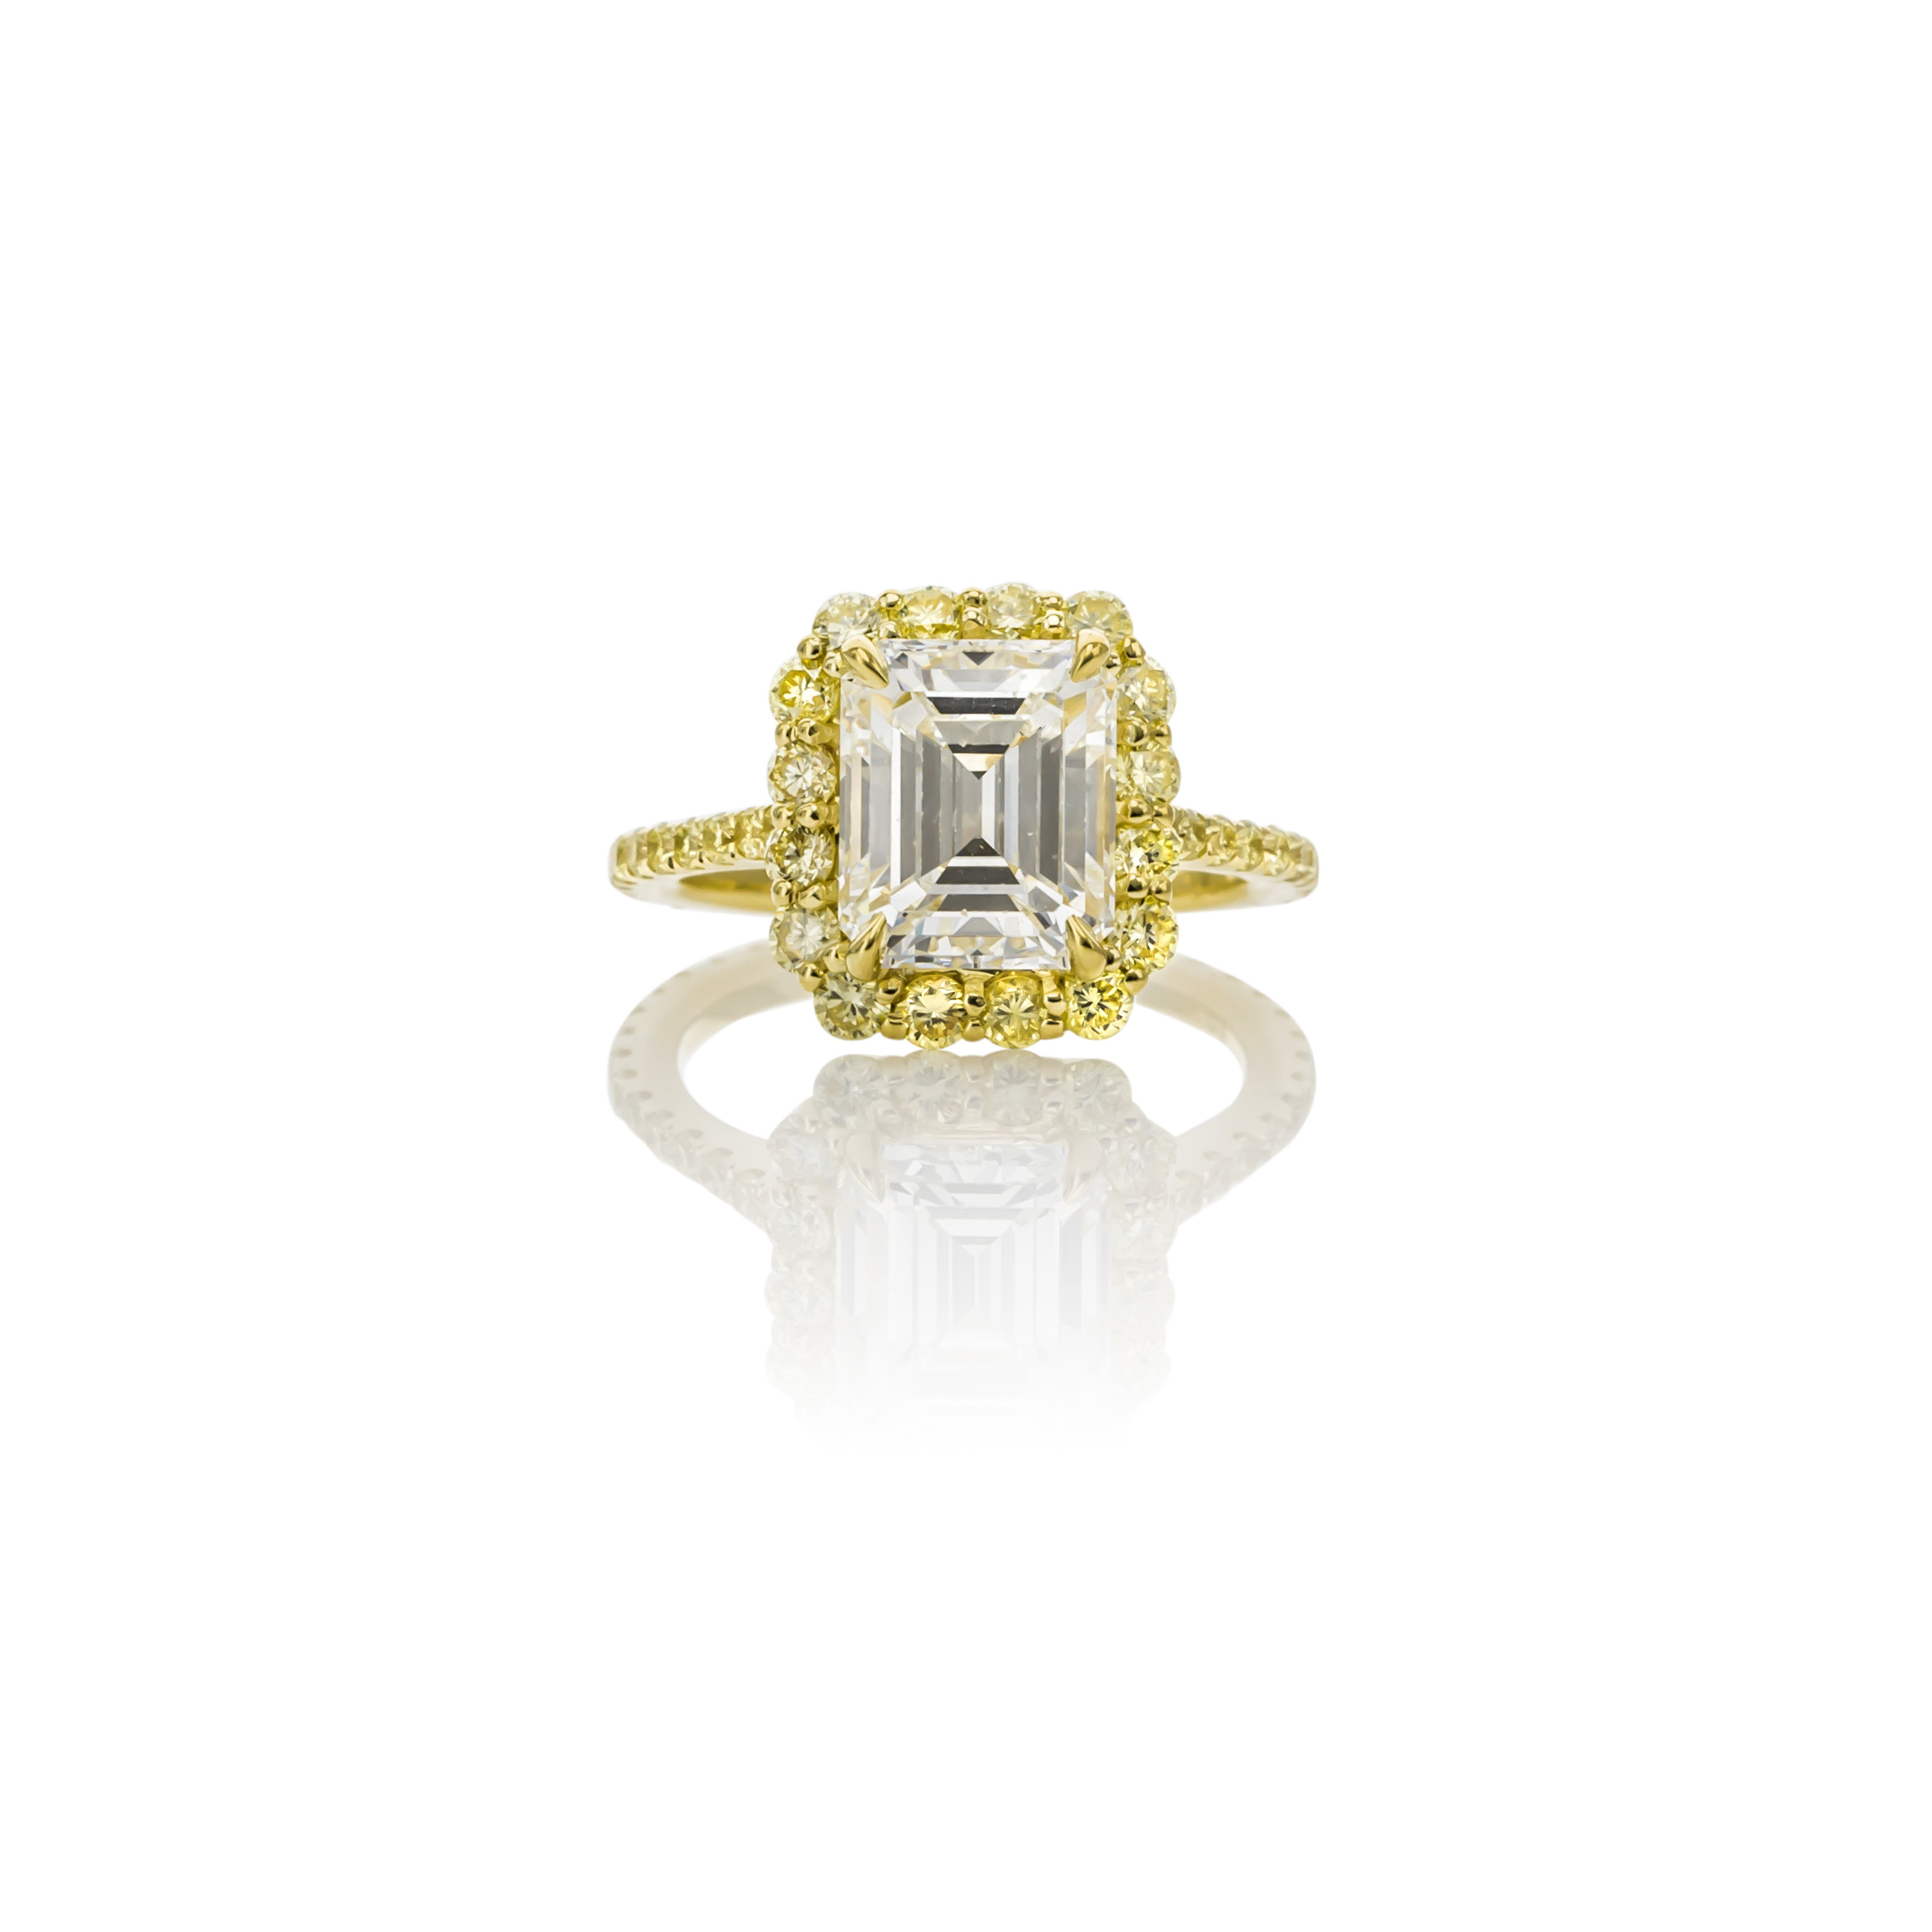 CUSTOM 18K YELLOW GOLD EMERALD CUT DIAMOND ENGAGEMENT RING WITH FANCY YELLOW DIAMOND HALO